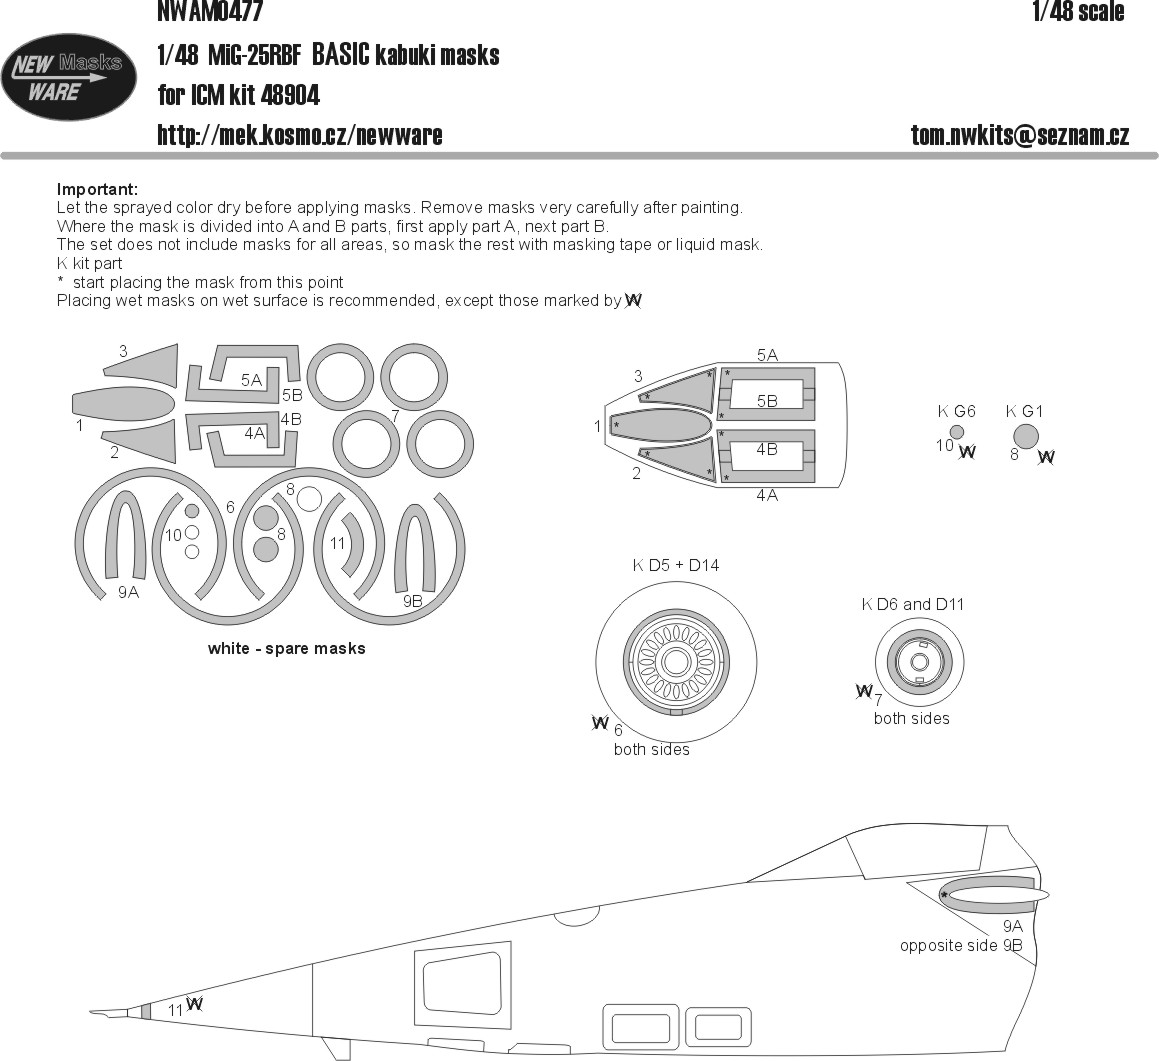 hight resolution of aircraft canopy wheels camouflage details designed to be use with icm kits manufacturer new ware code number nwam0477 scale 1 48